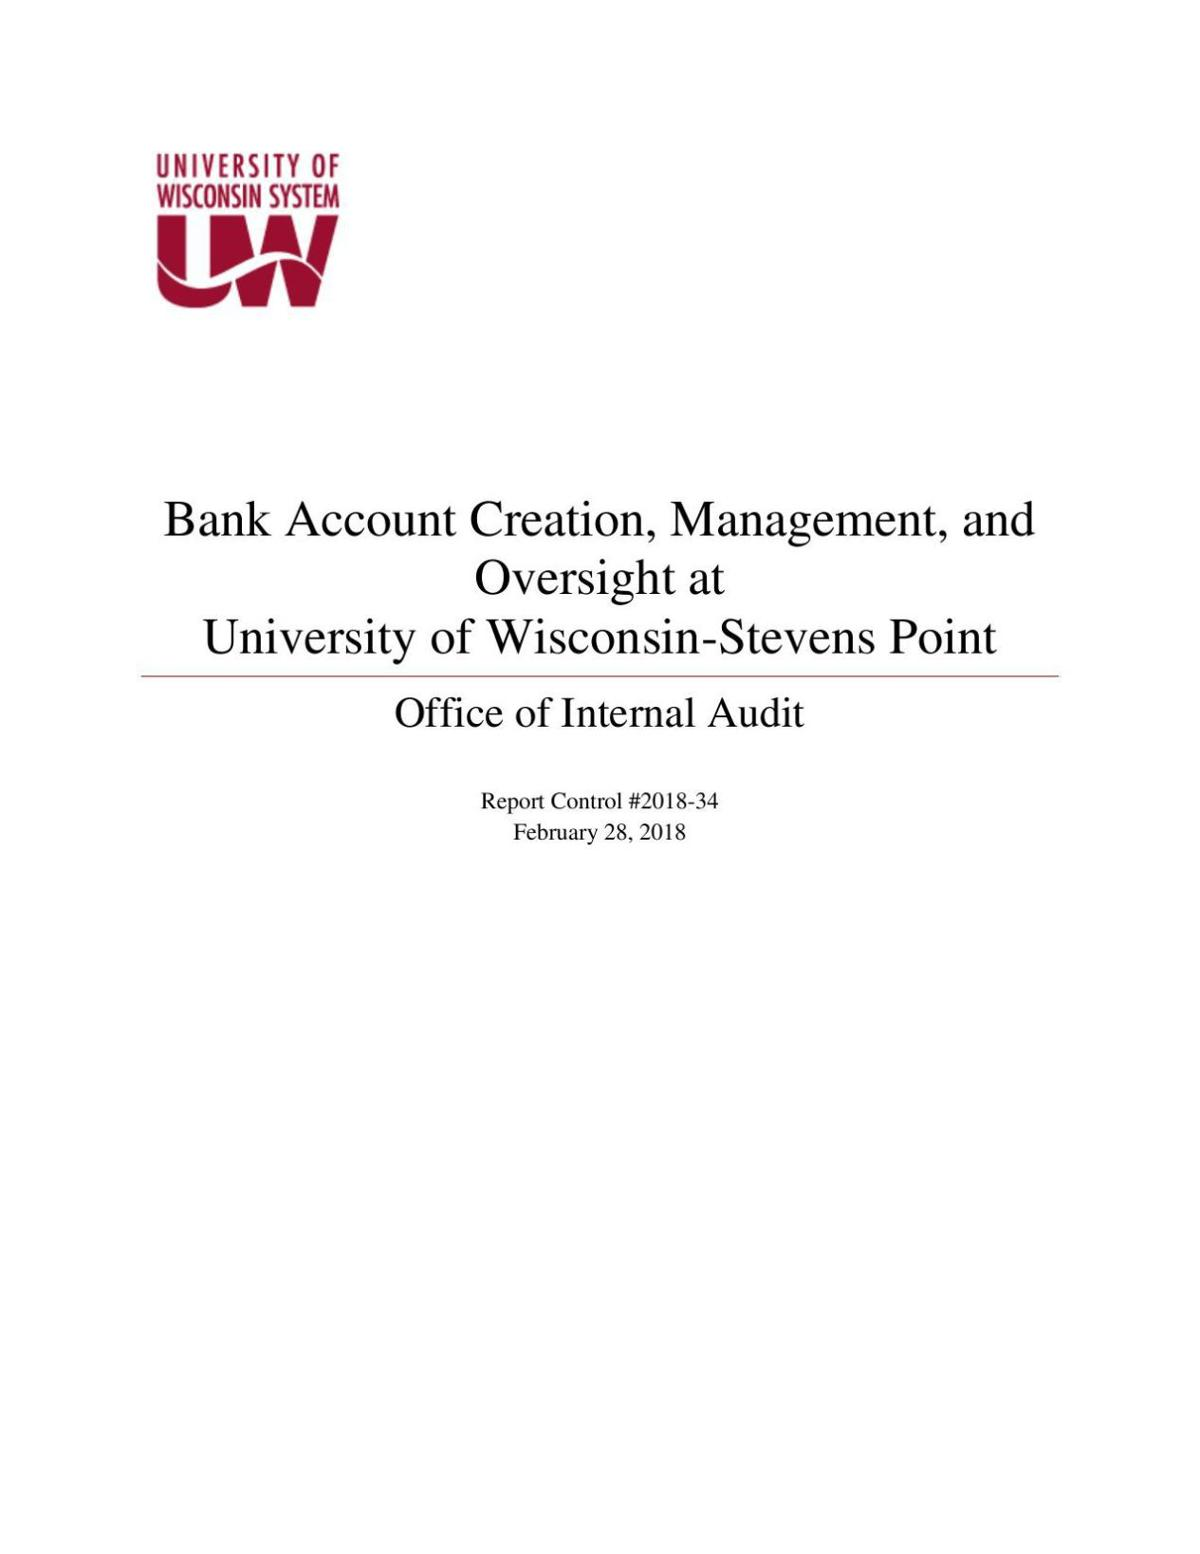 Bank Account Creation, Management and Oversight at UW-Stevens Point